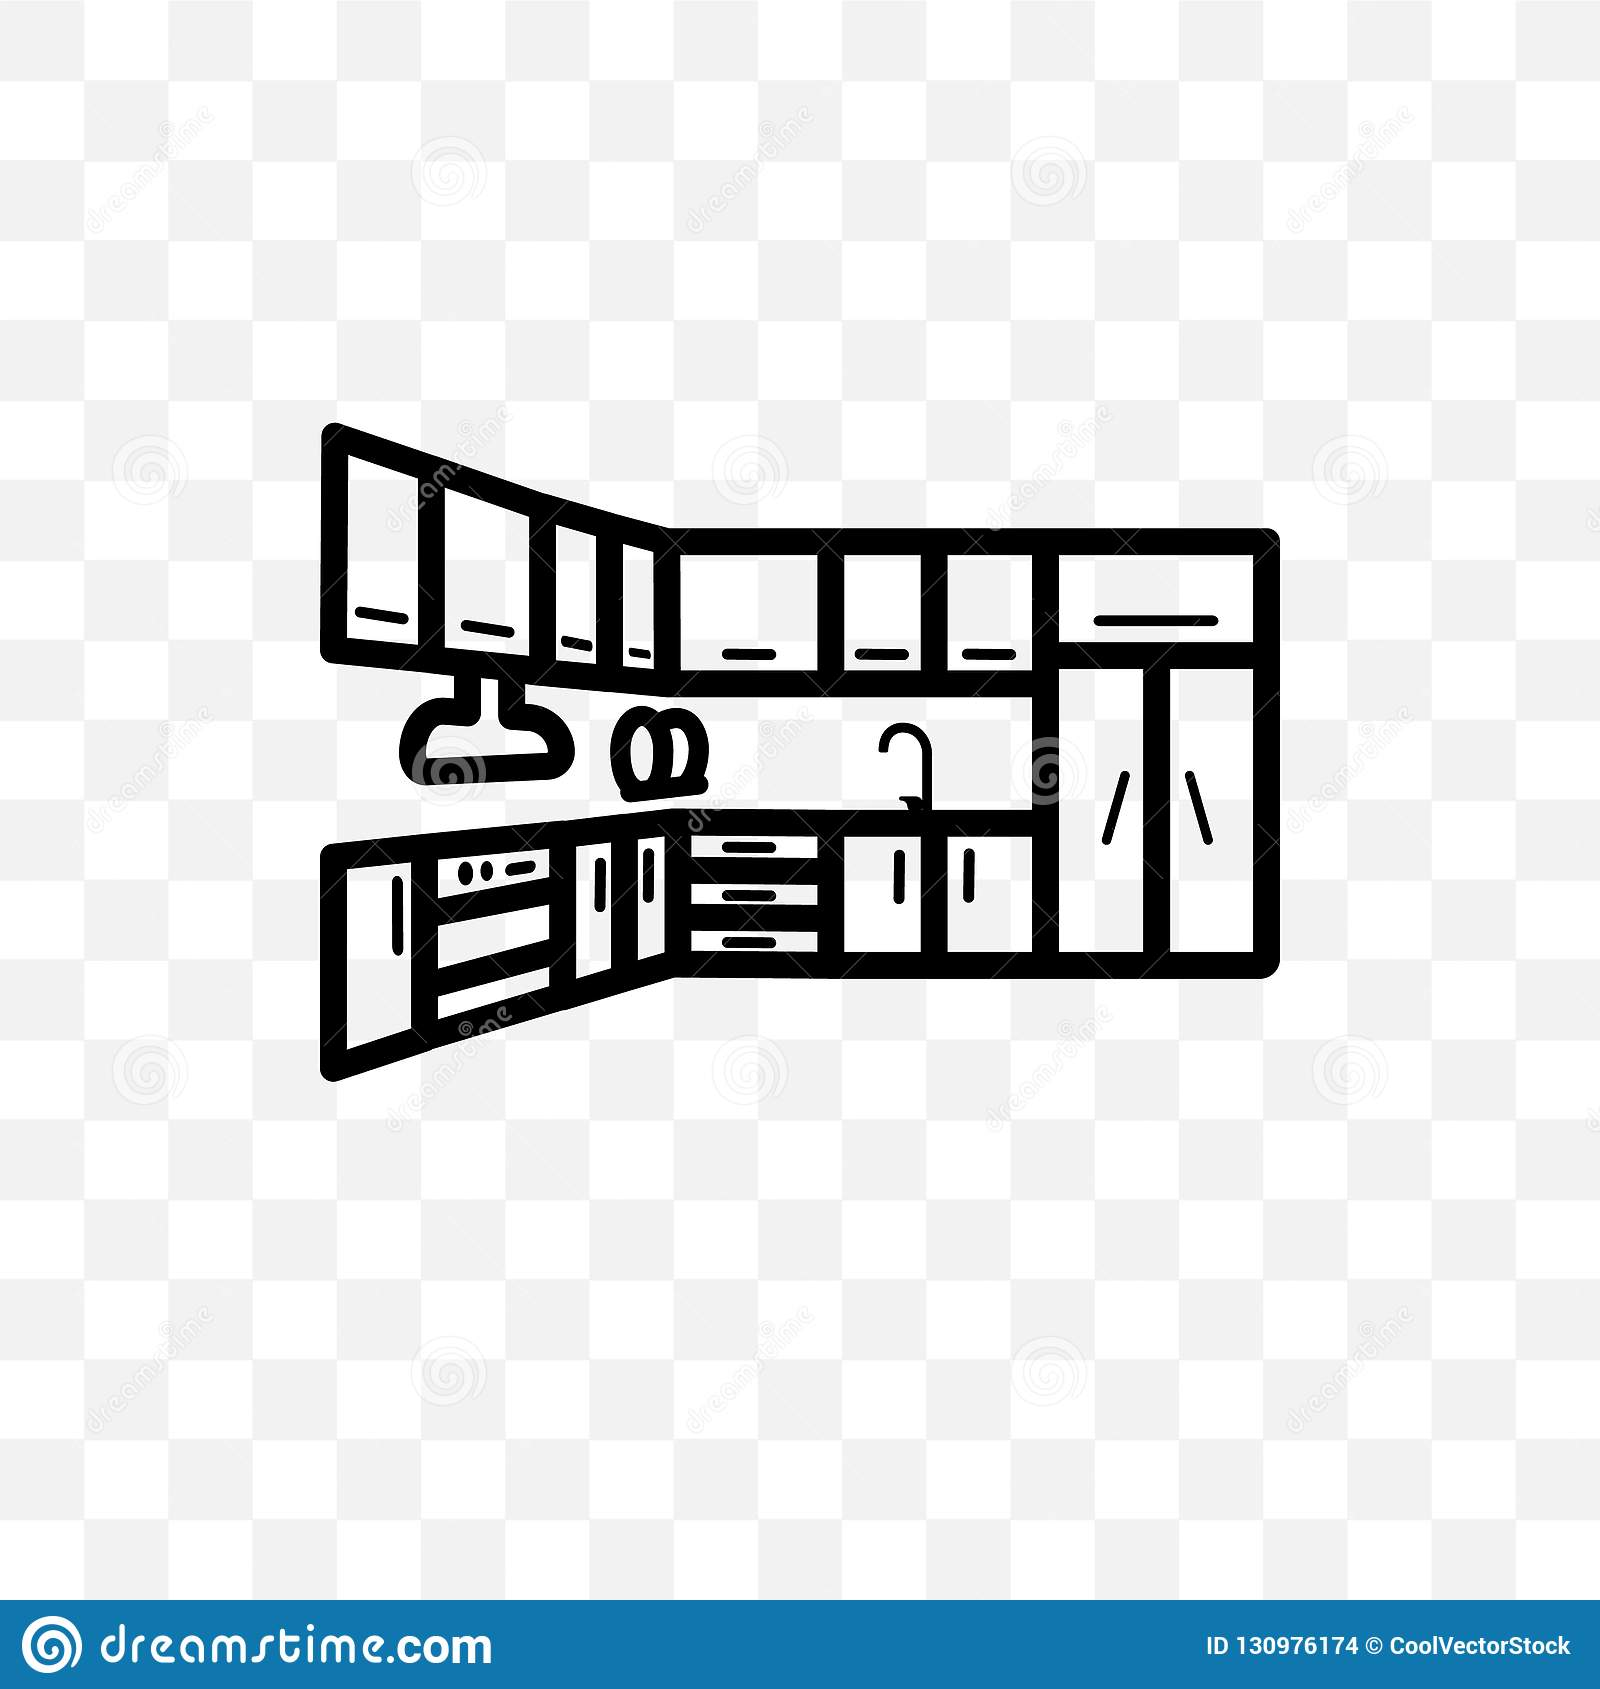 Kitchen Cabinet Vector Linear Icon Isolated On Transparent